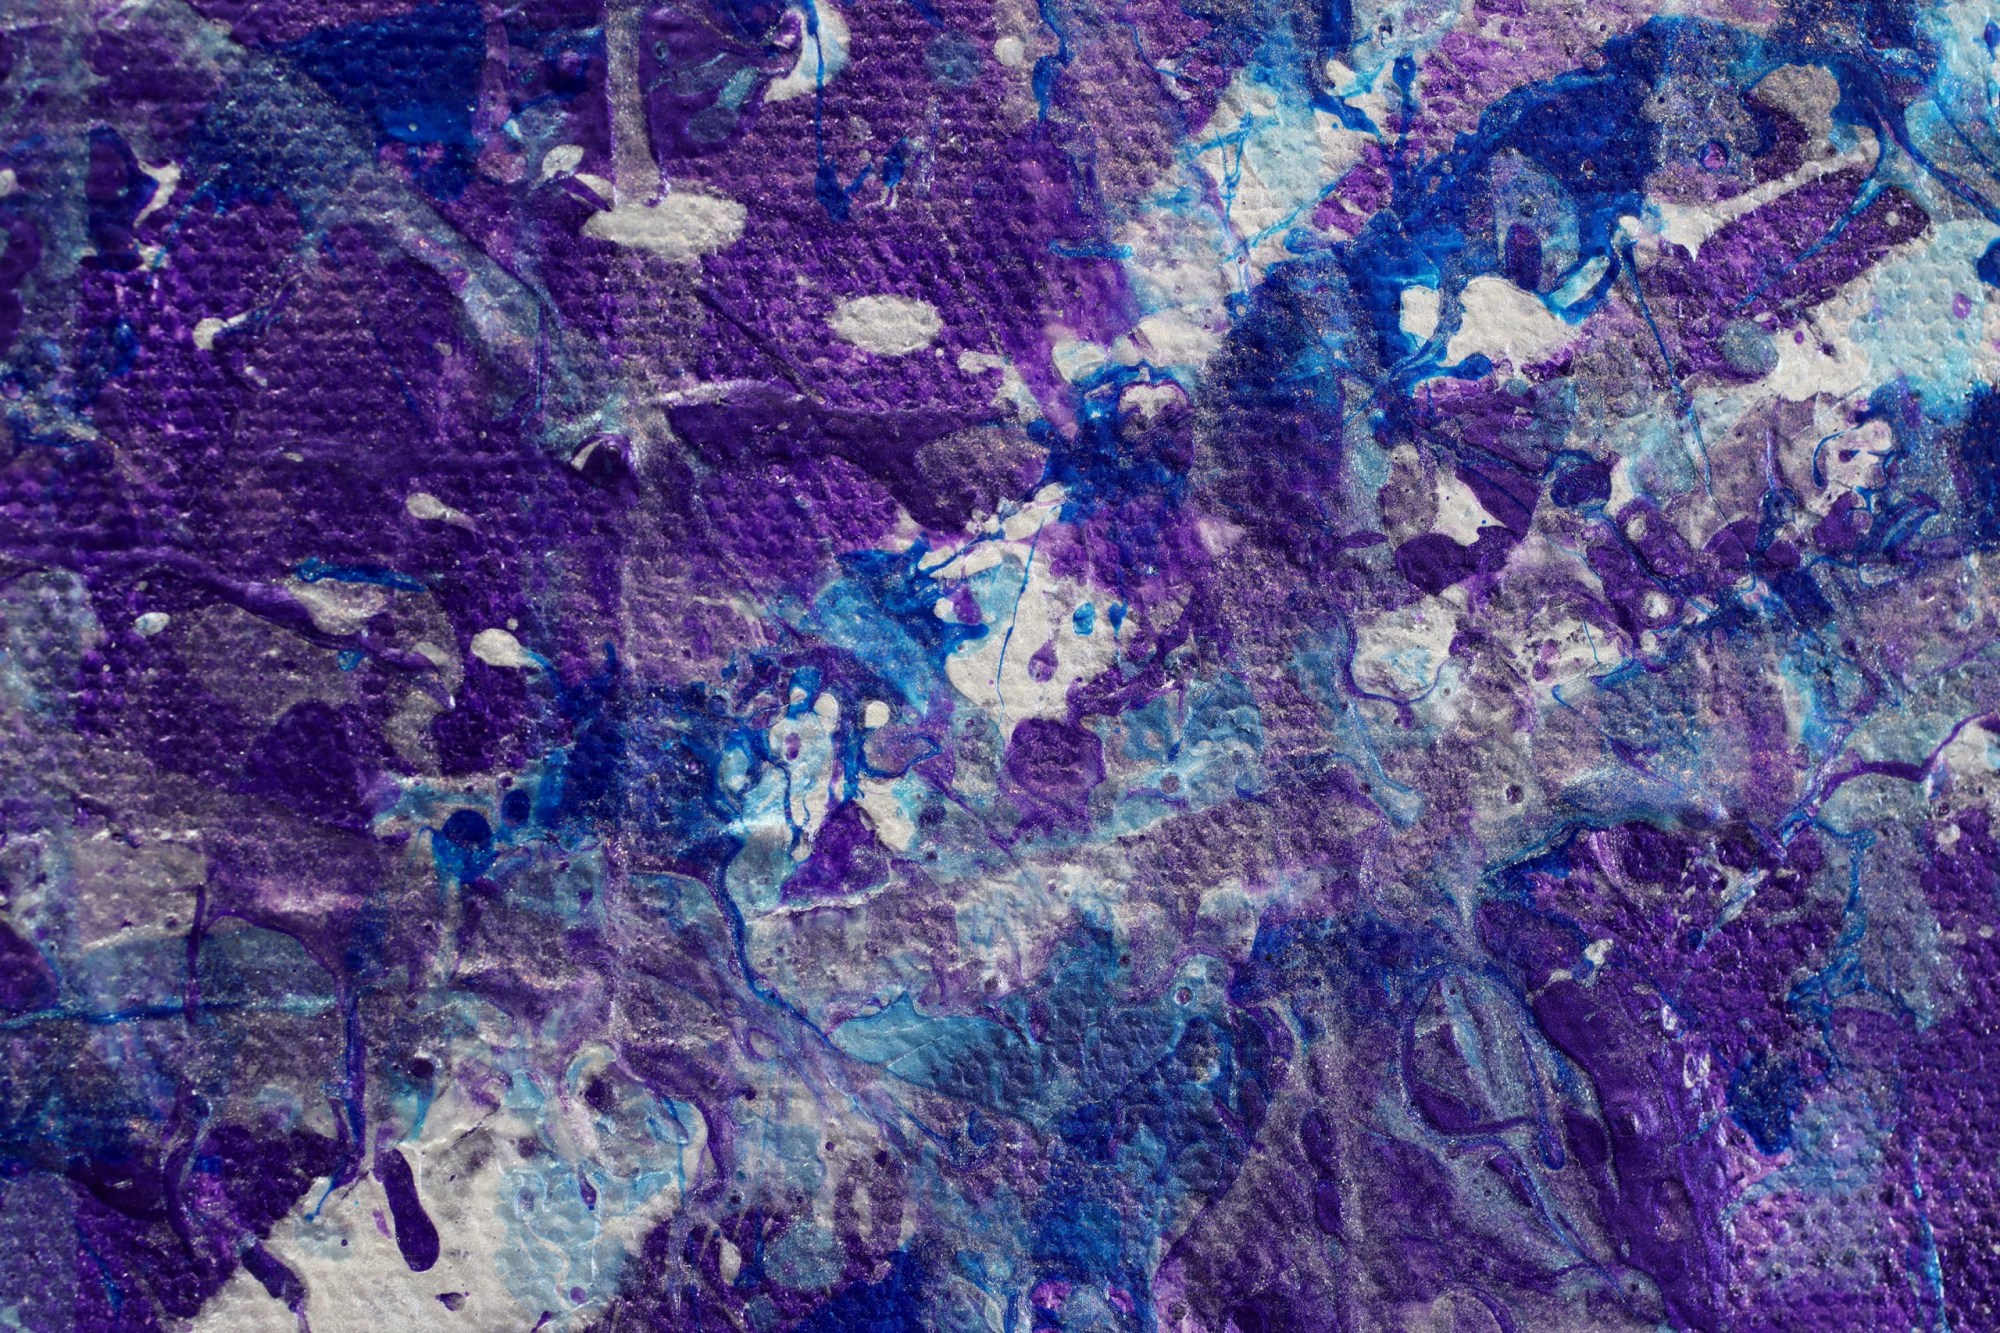 DETAIL / Purple Display of Affection (With Blue and Silver) 2 Painting